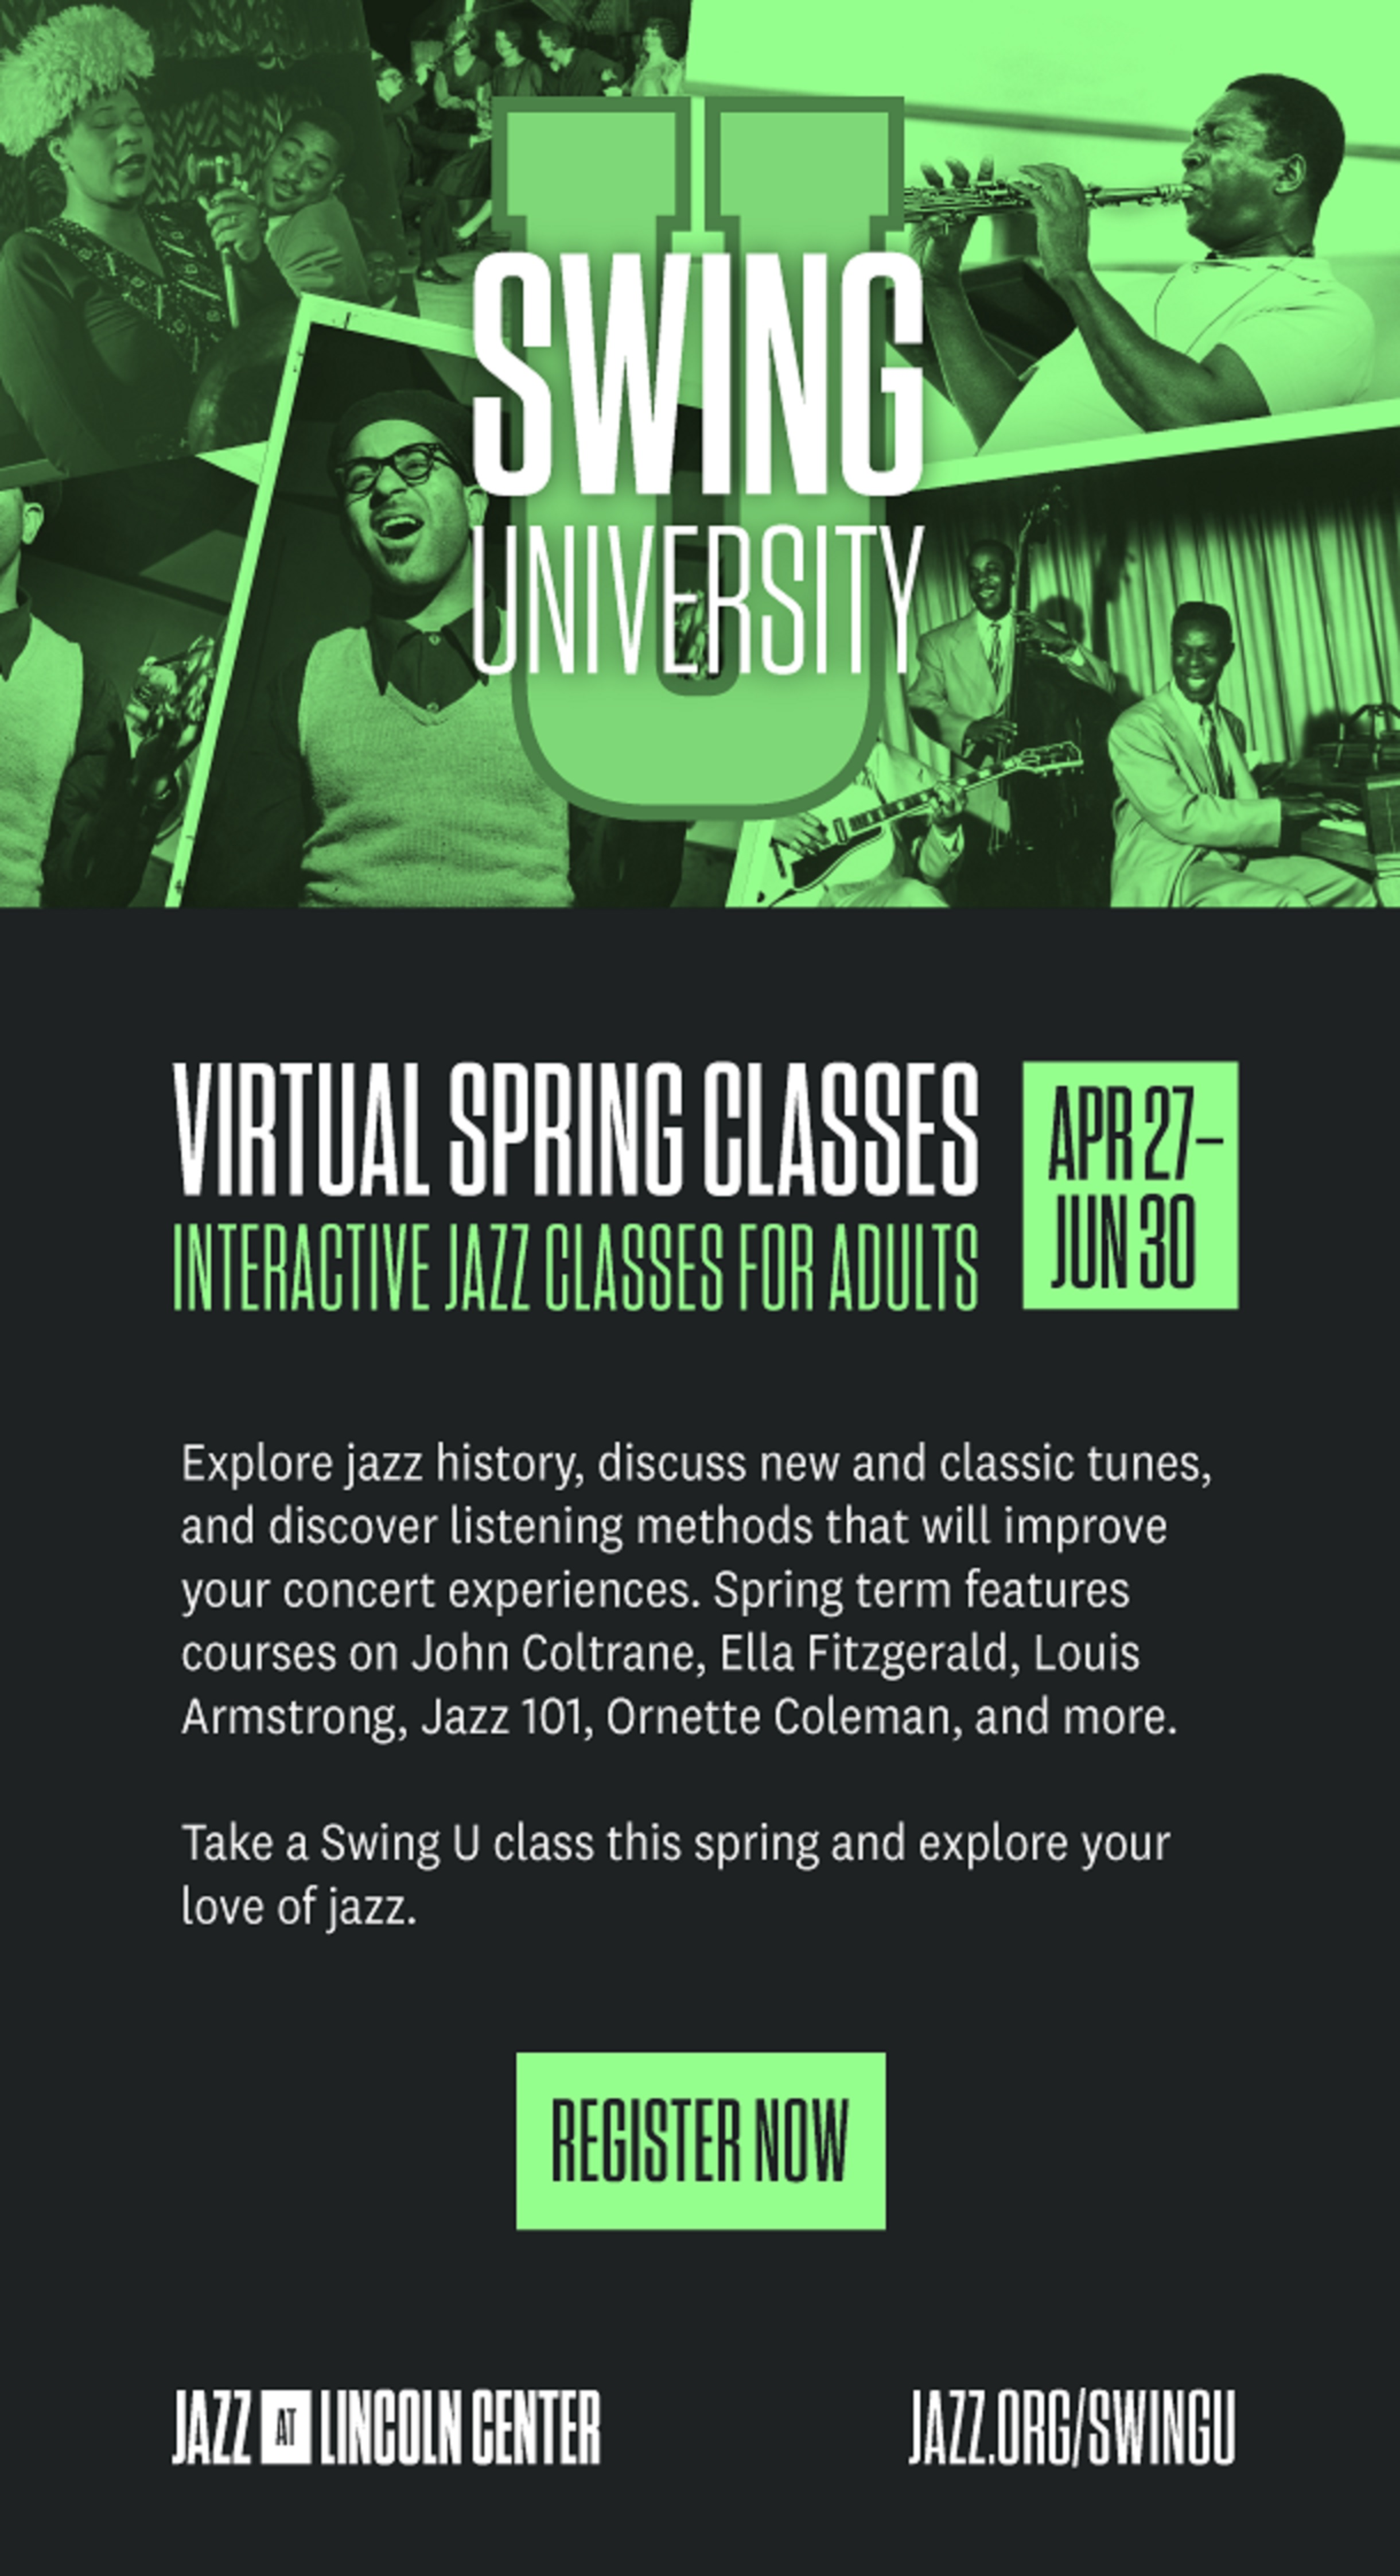 Learn about Louis Armstrong, John Coltrane, and more Jazz Legends this Spring